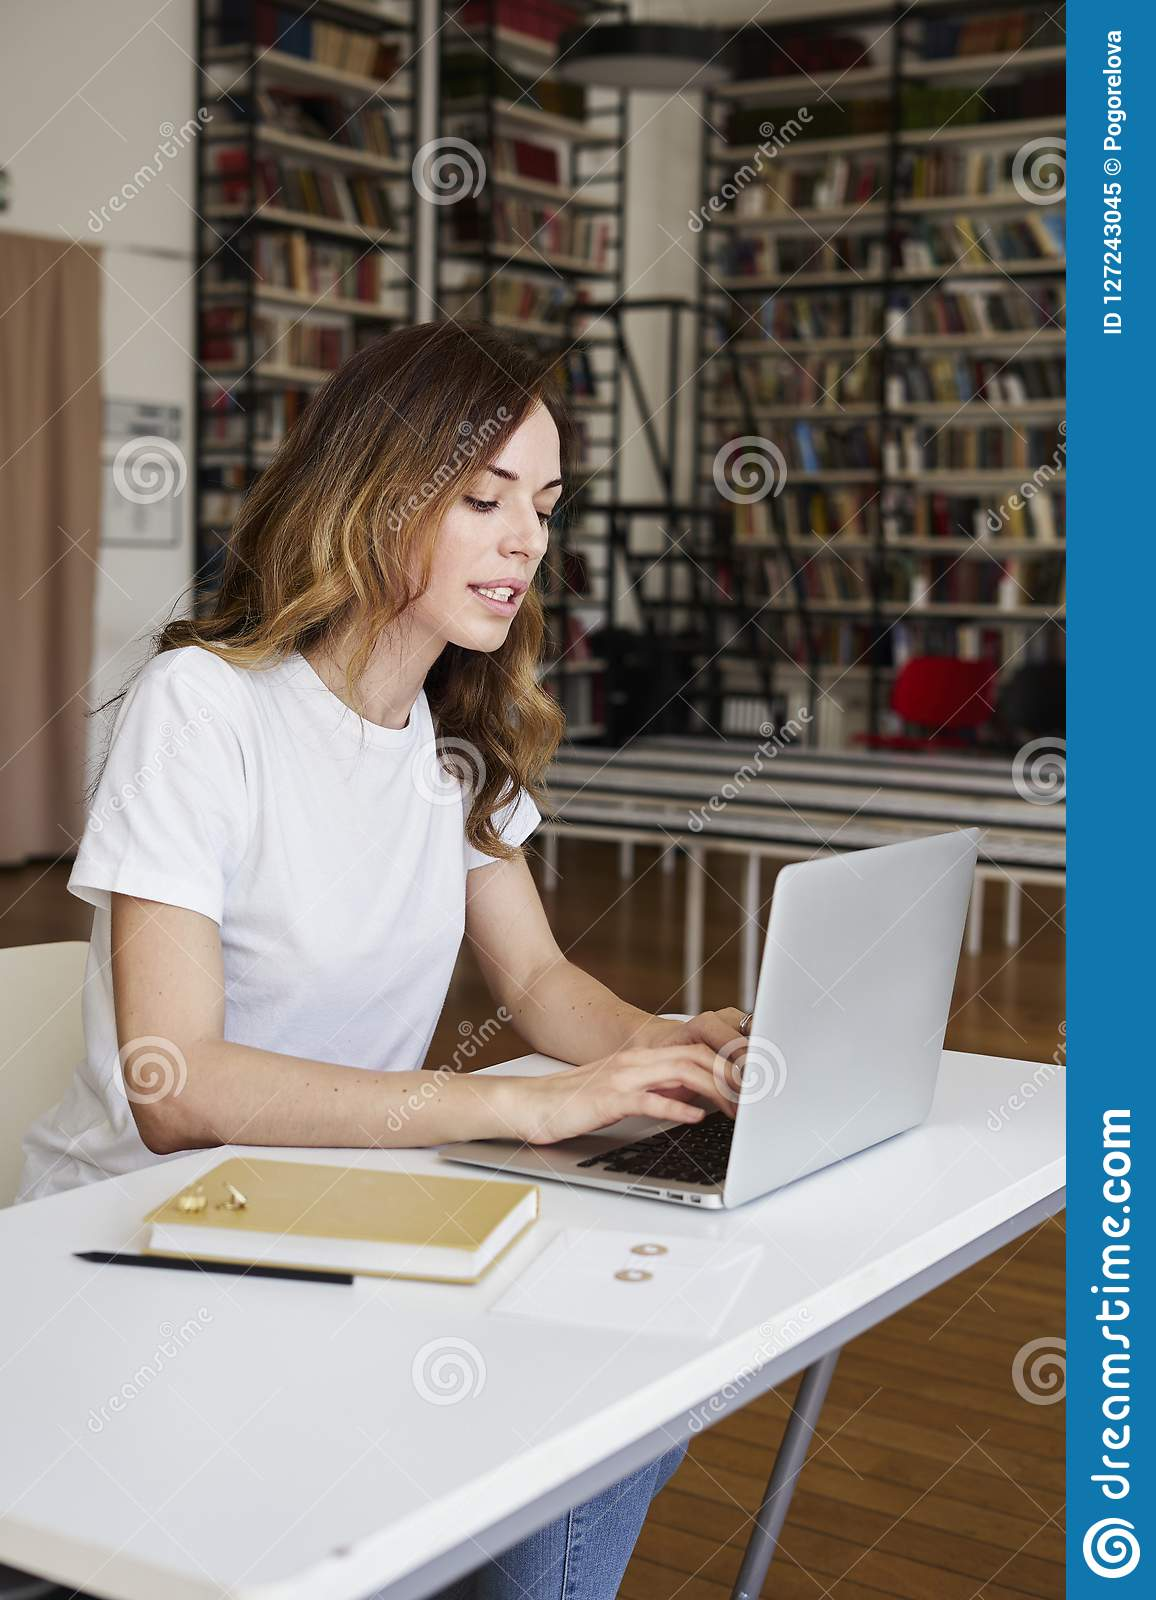 Young smart woman long hair analyst working at co-working office on laptop, bookshelf in library